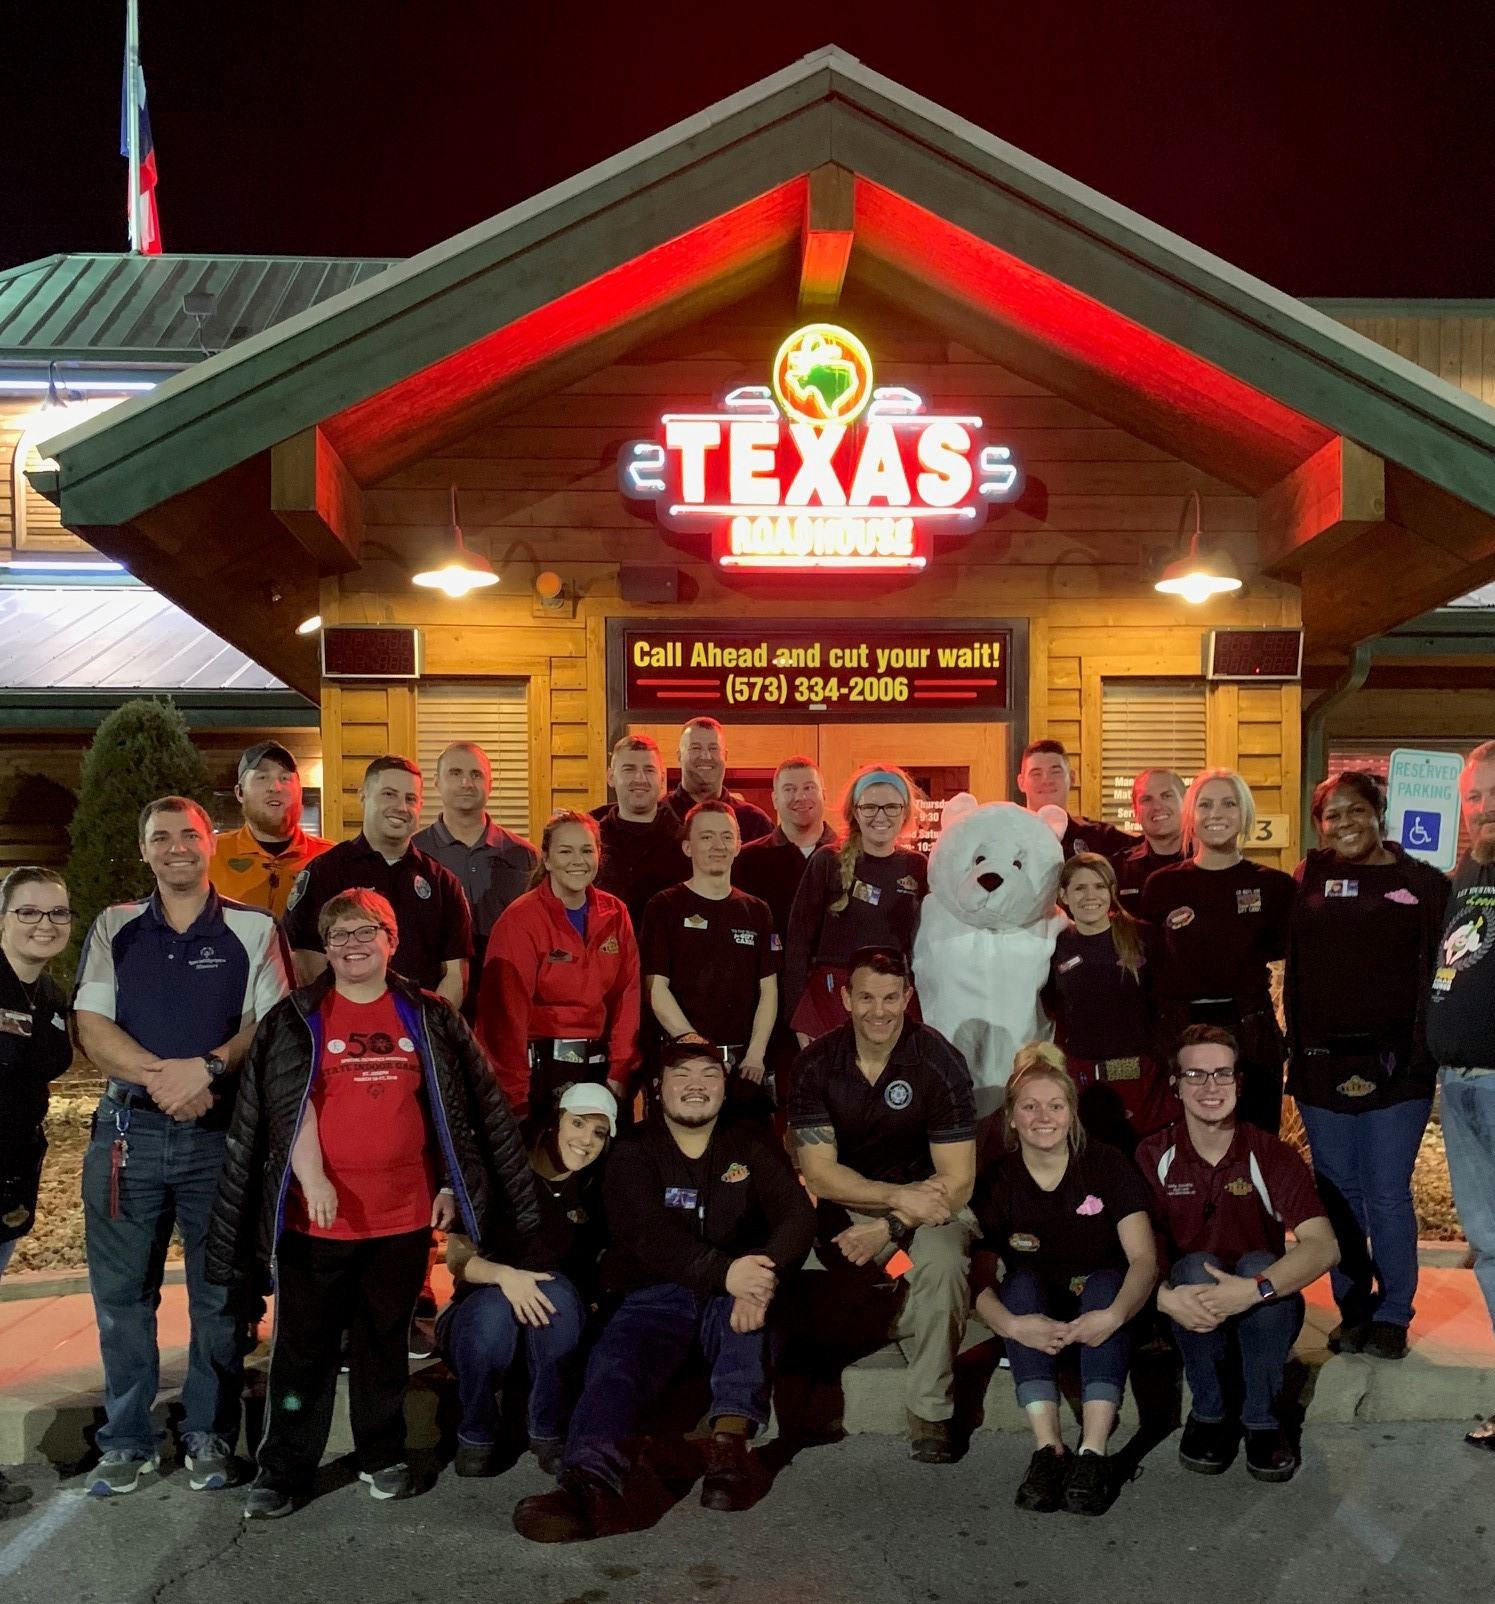 A group of law enforcement officers and servers pose for a photo outside of a Texas Roadhouse